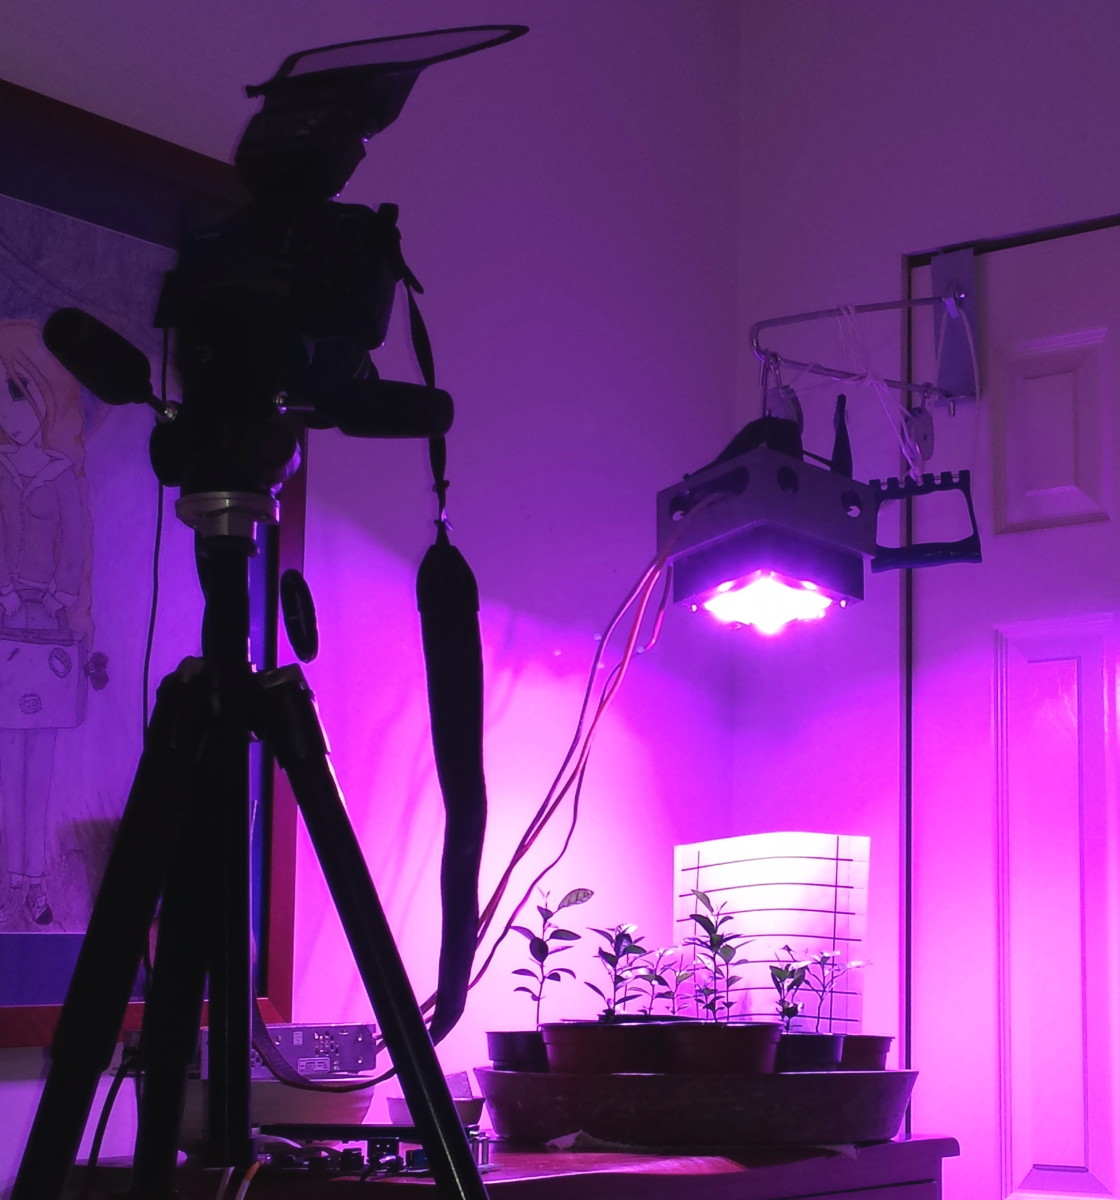 The camera is my aging Canon T1i mounted on a Manfrotto 290 Series Tripod with a white defuser on the flash unit.